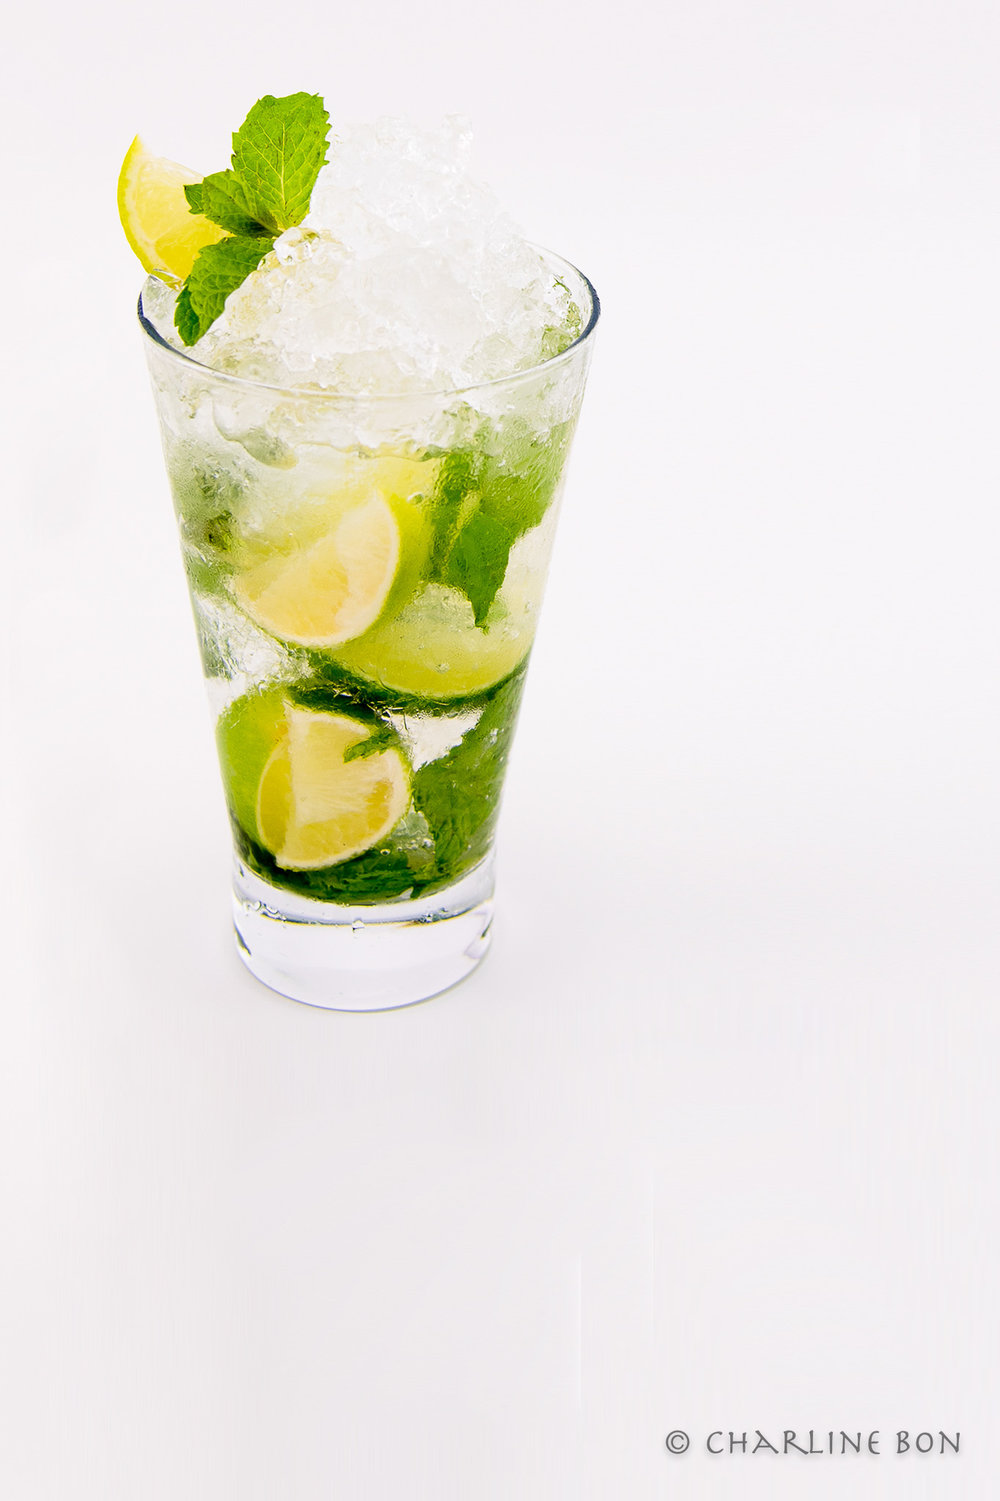 photographie culinaire cocktail-1.jpg